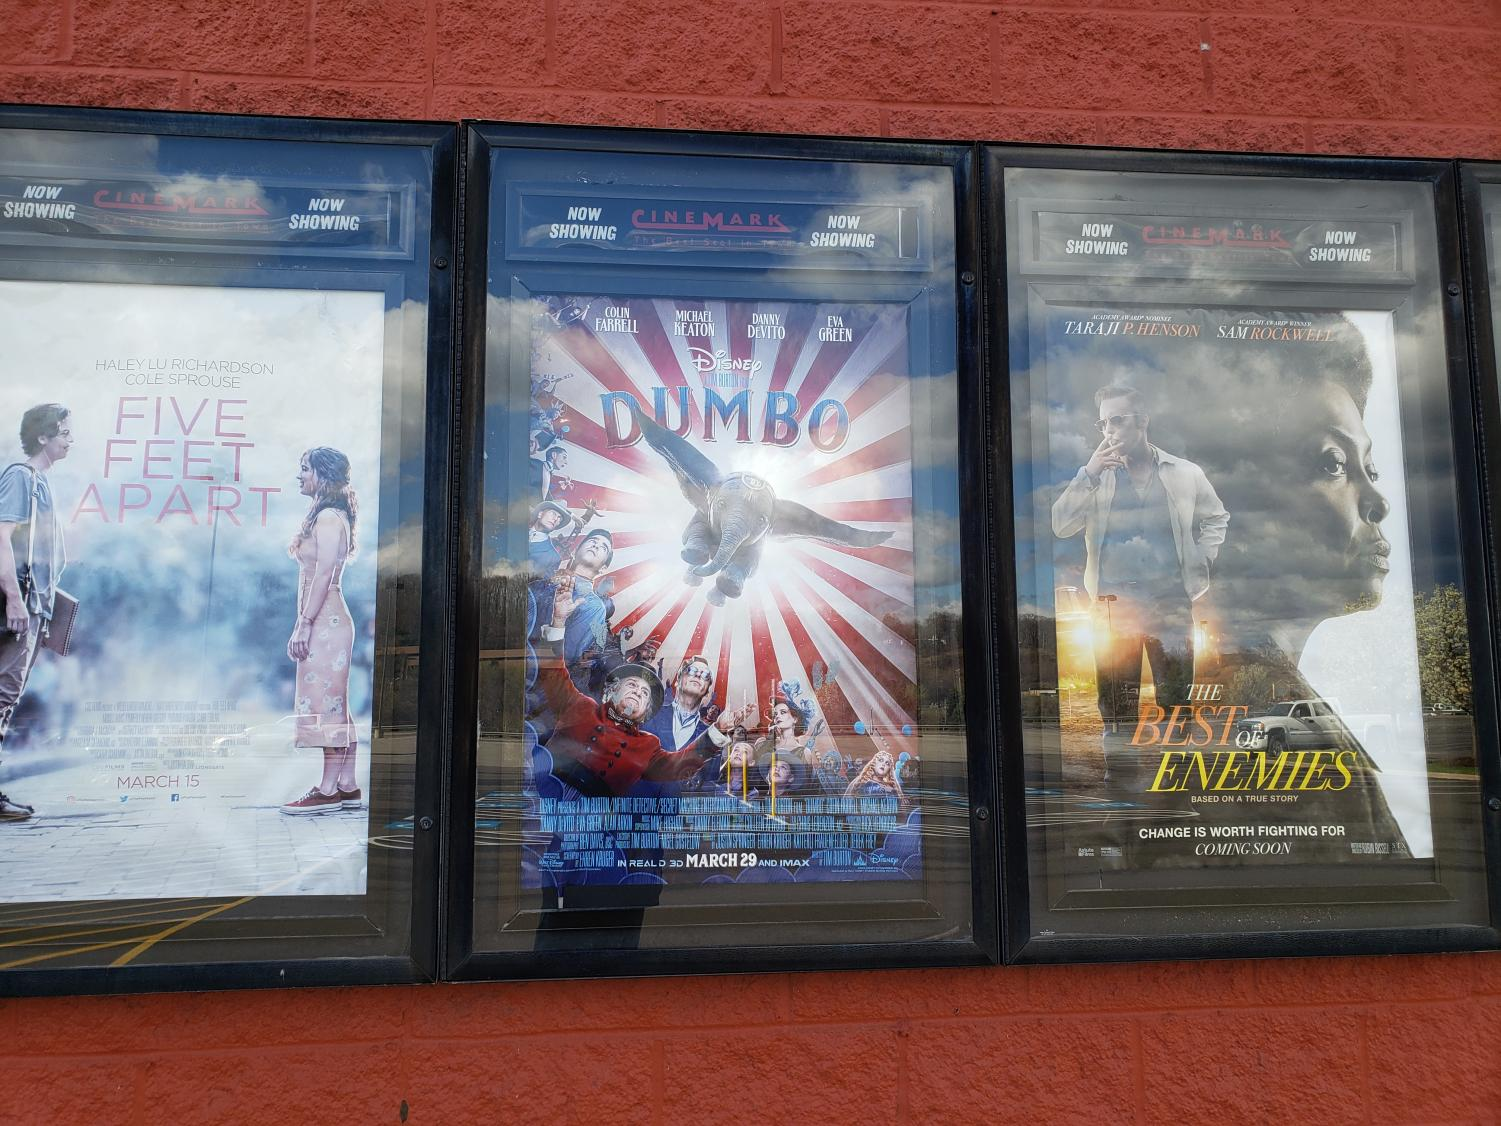 Showcased at the Monaca Cinemark, a poster for the new live-action remake of Dumbo, a timely classic, is displayed for movie-goers to see.